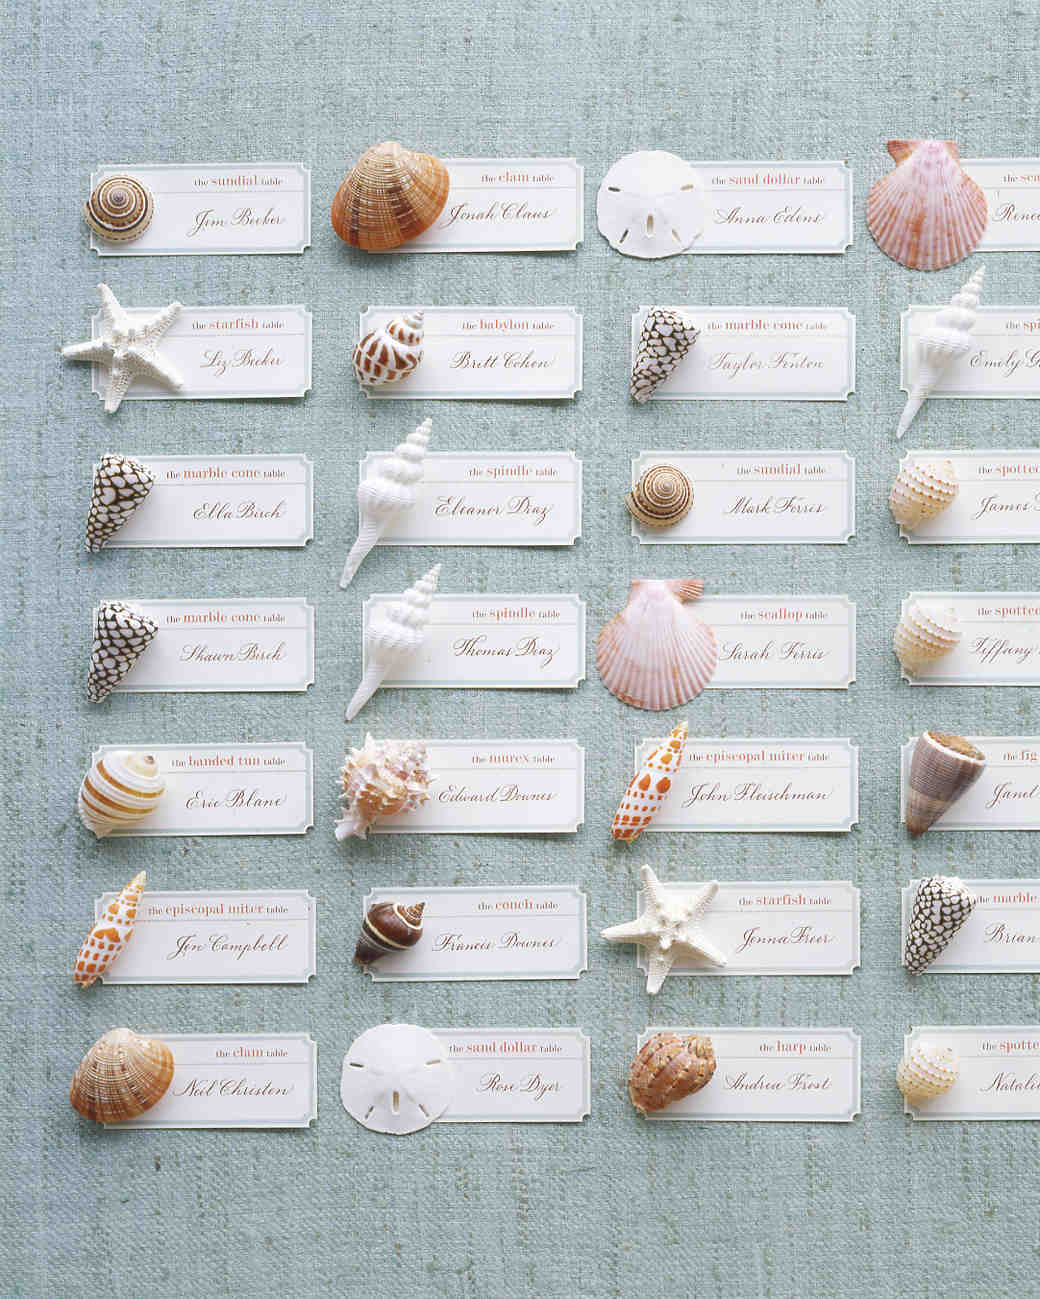 30 Beach Wedding Hairstyles Ideas Designs: Escort Card Ideas For A Beach Wedding